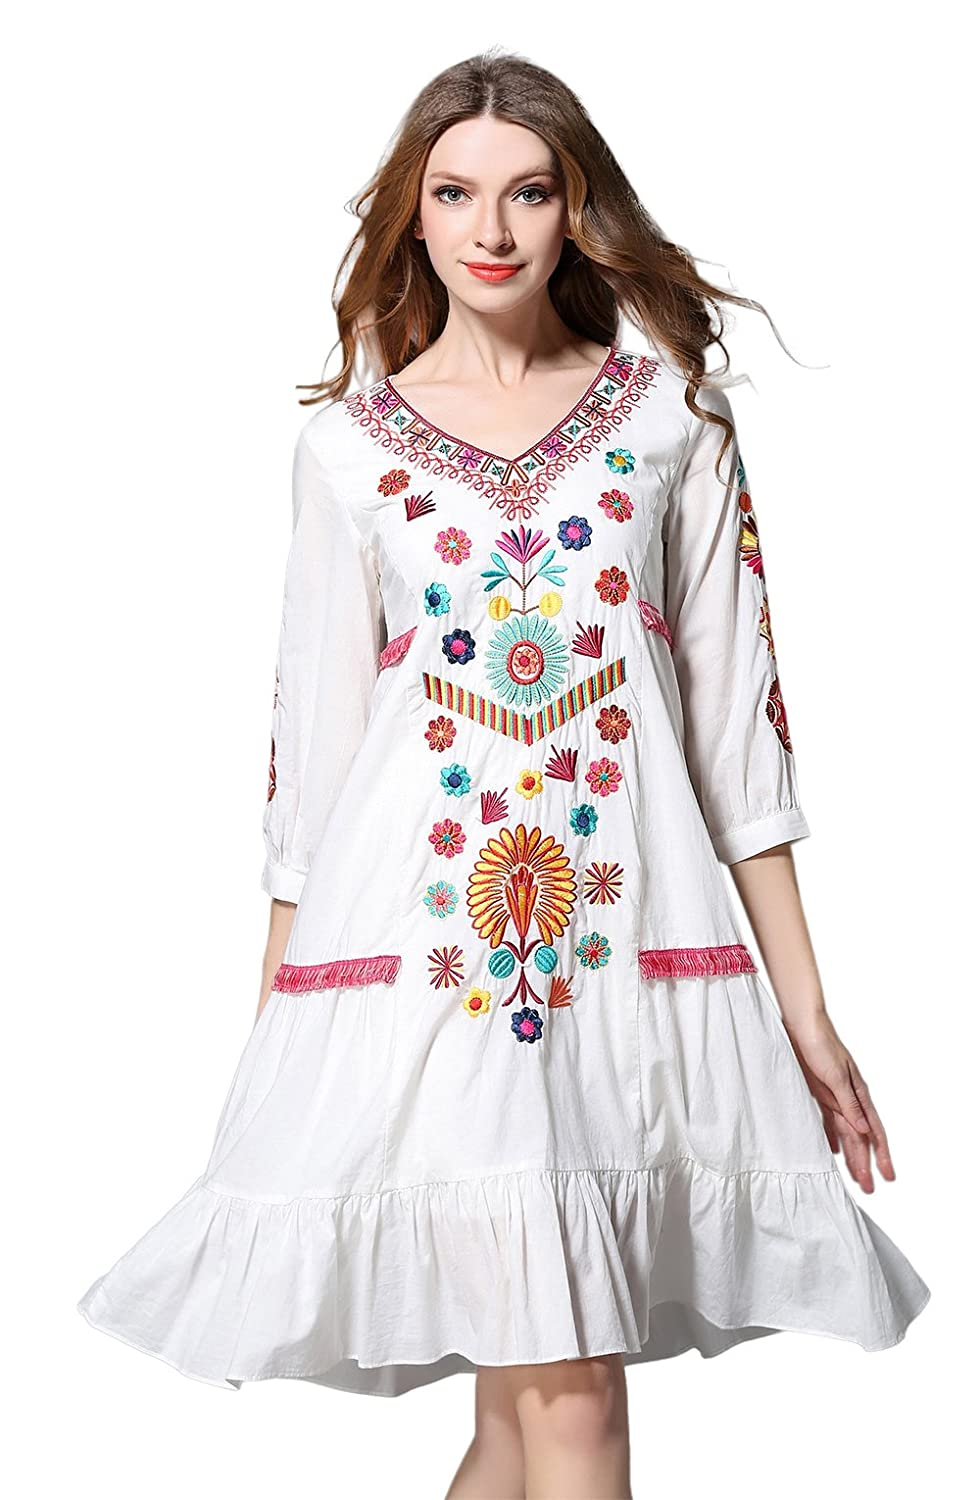 e89520cc832 This shirt dress is featured with beautiful flowers Embroidery